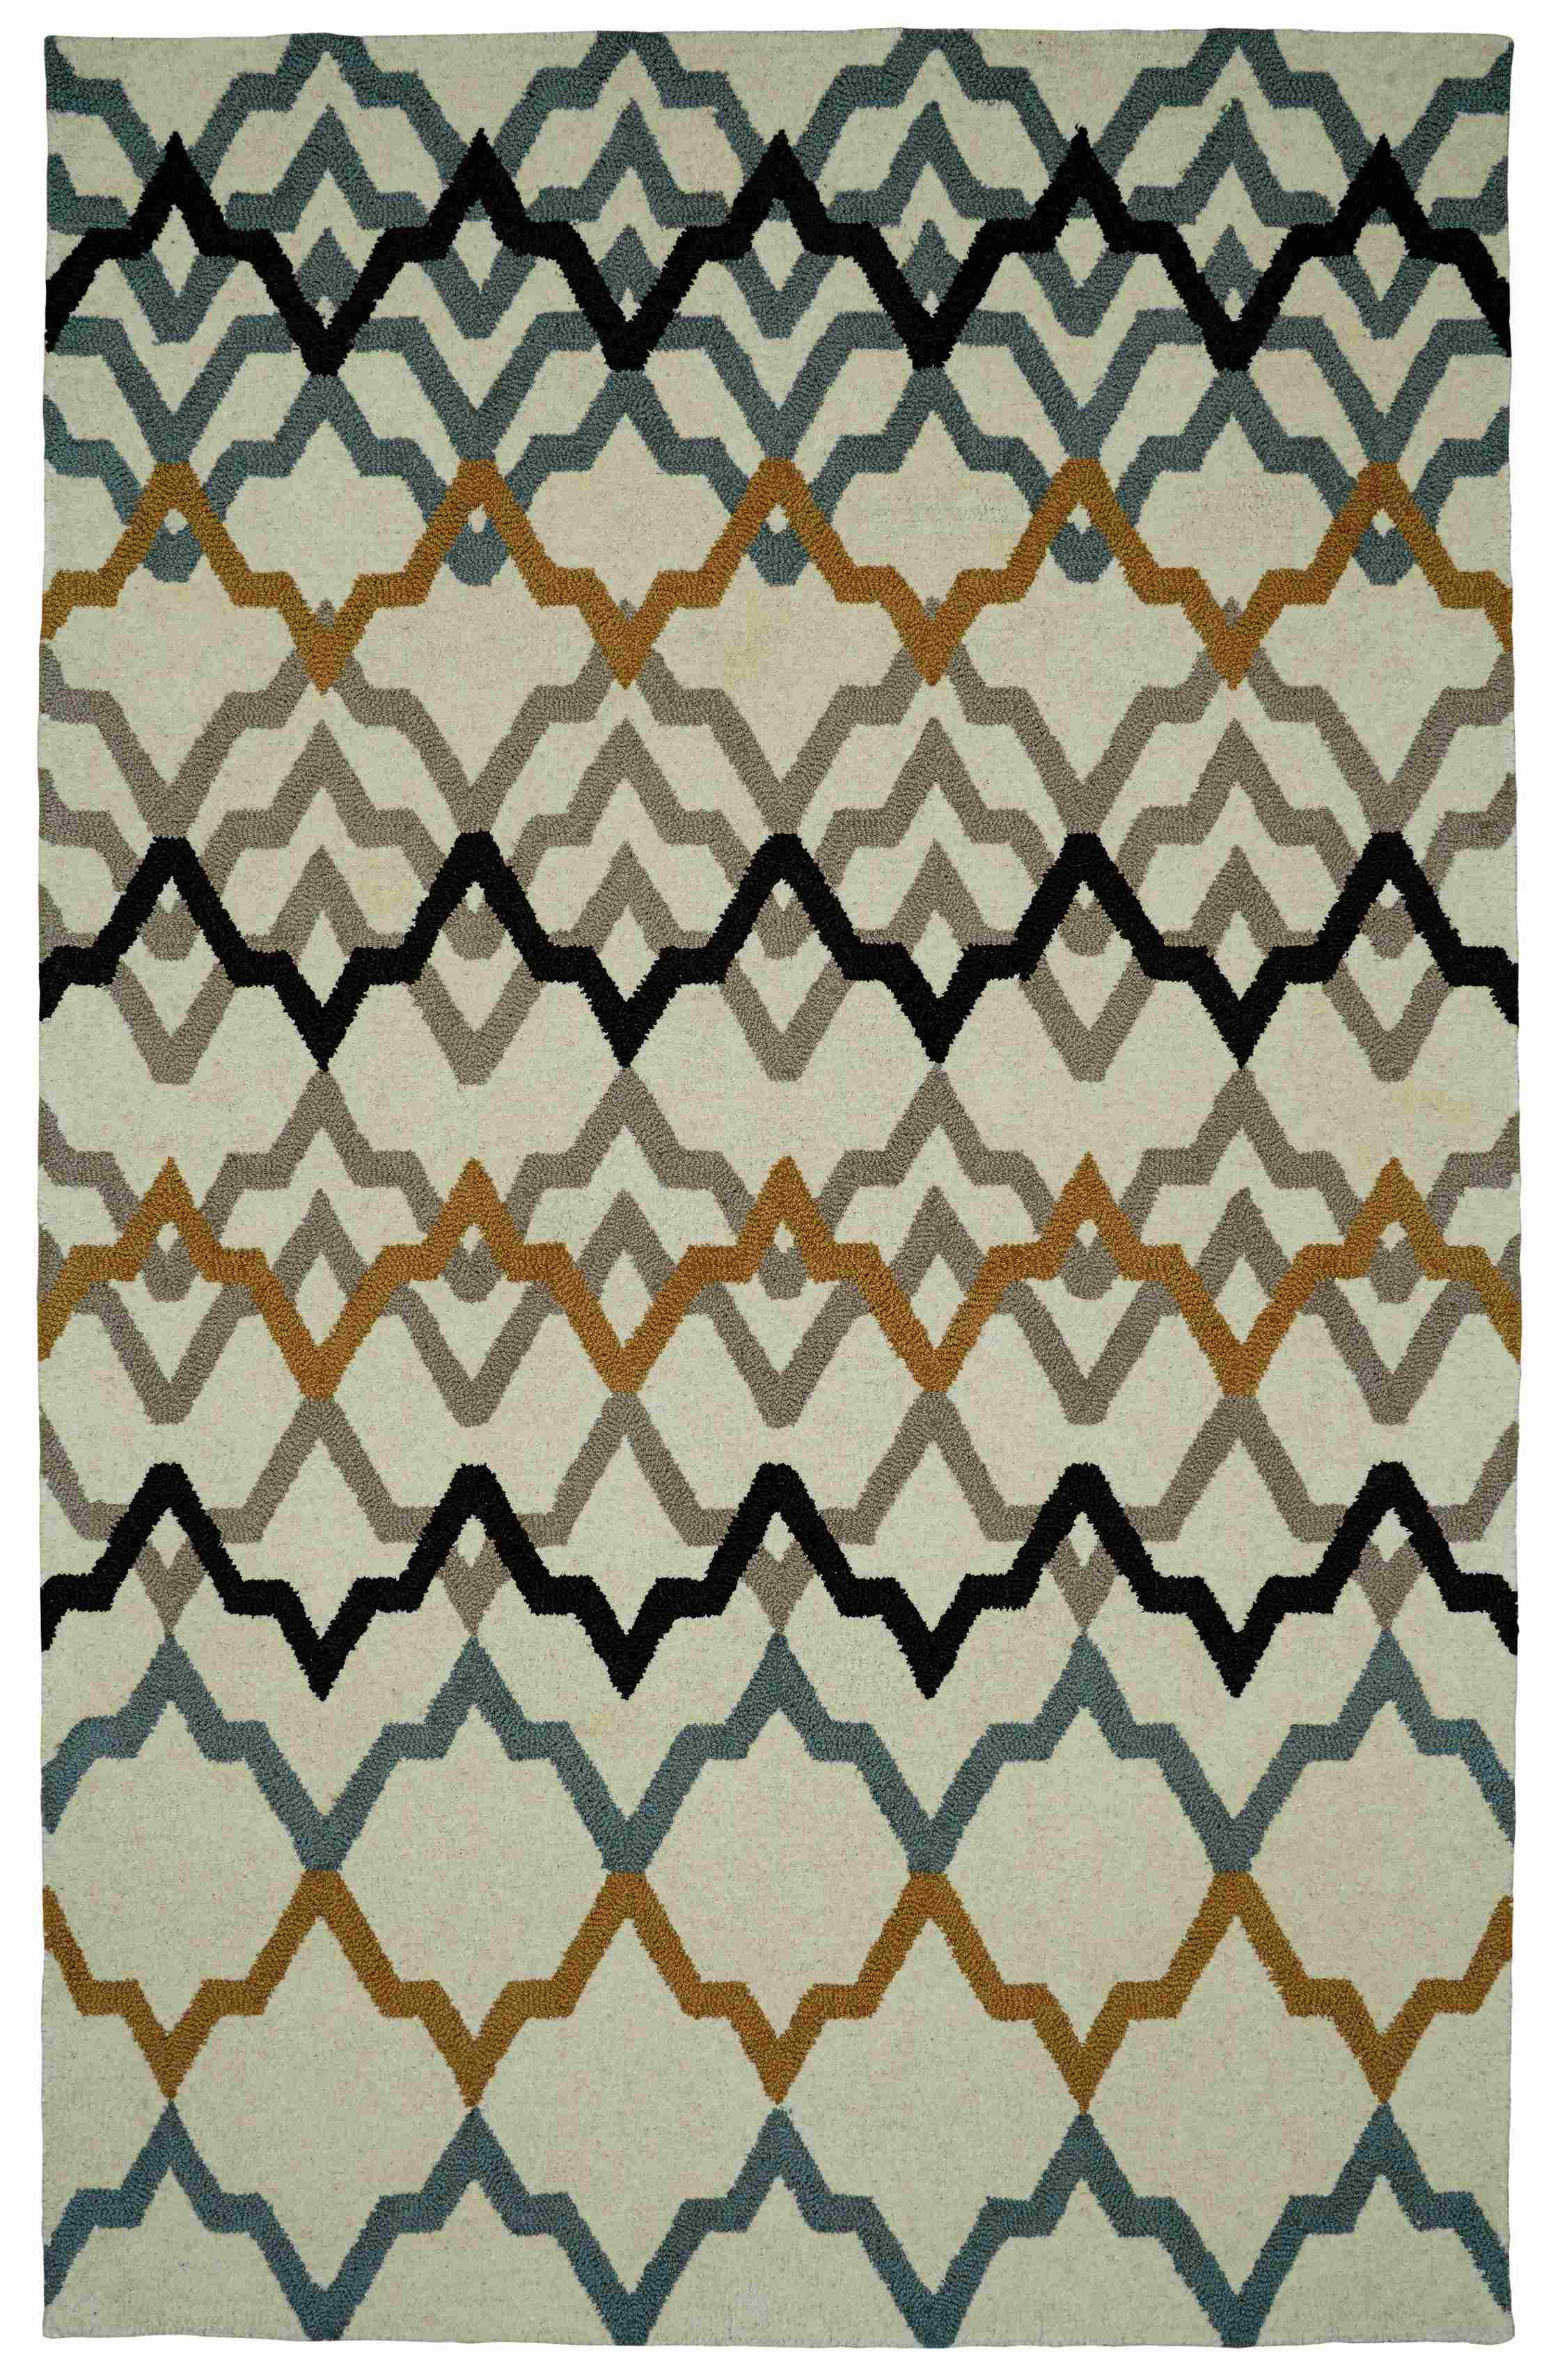 Dynamic Rugs Palace Geometric Ivory 5575 Area Rug